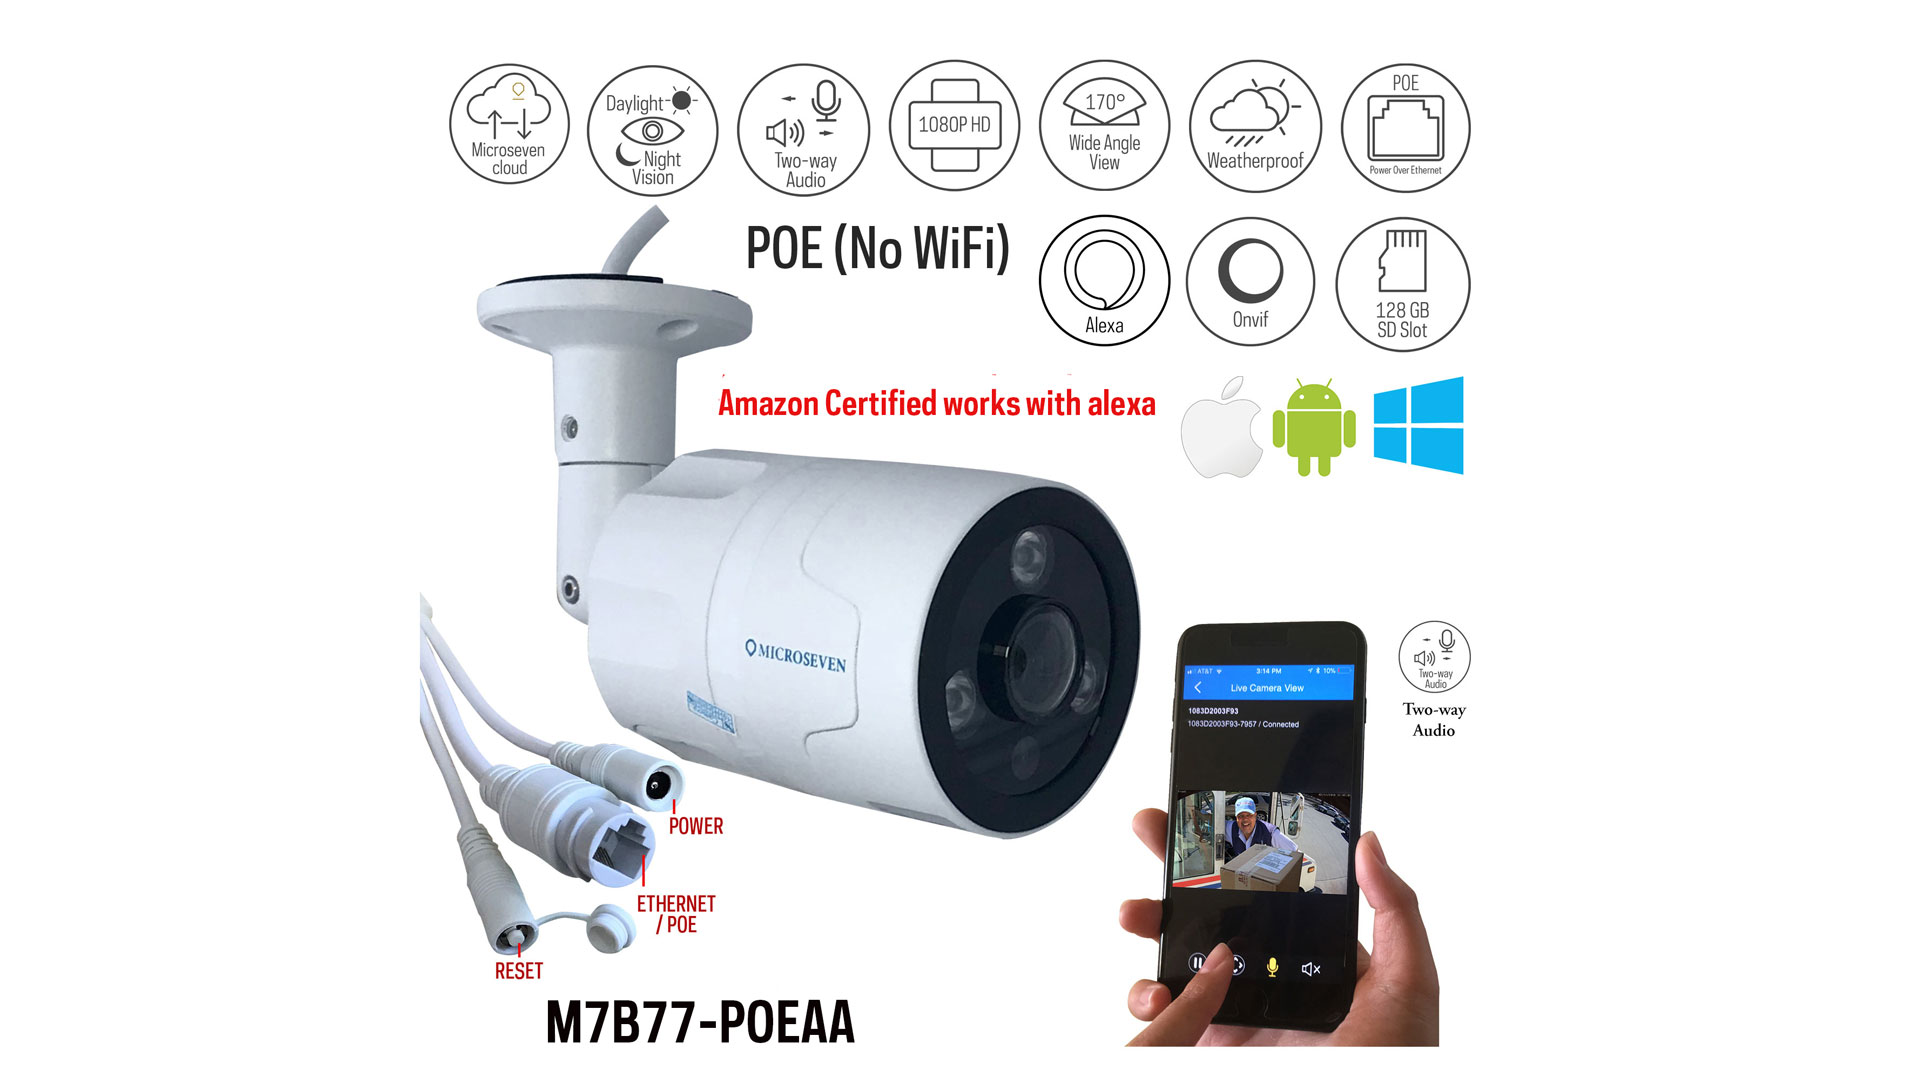 How To Set Up M7B77-POEAA 170º Wide Angle Microseven Security Camera Hardware Installation